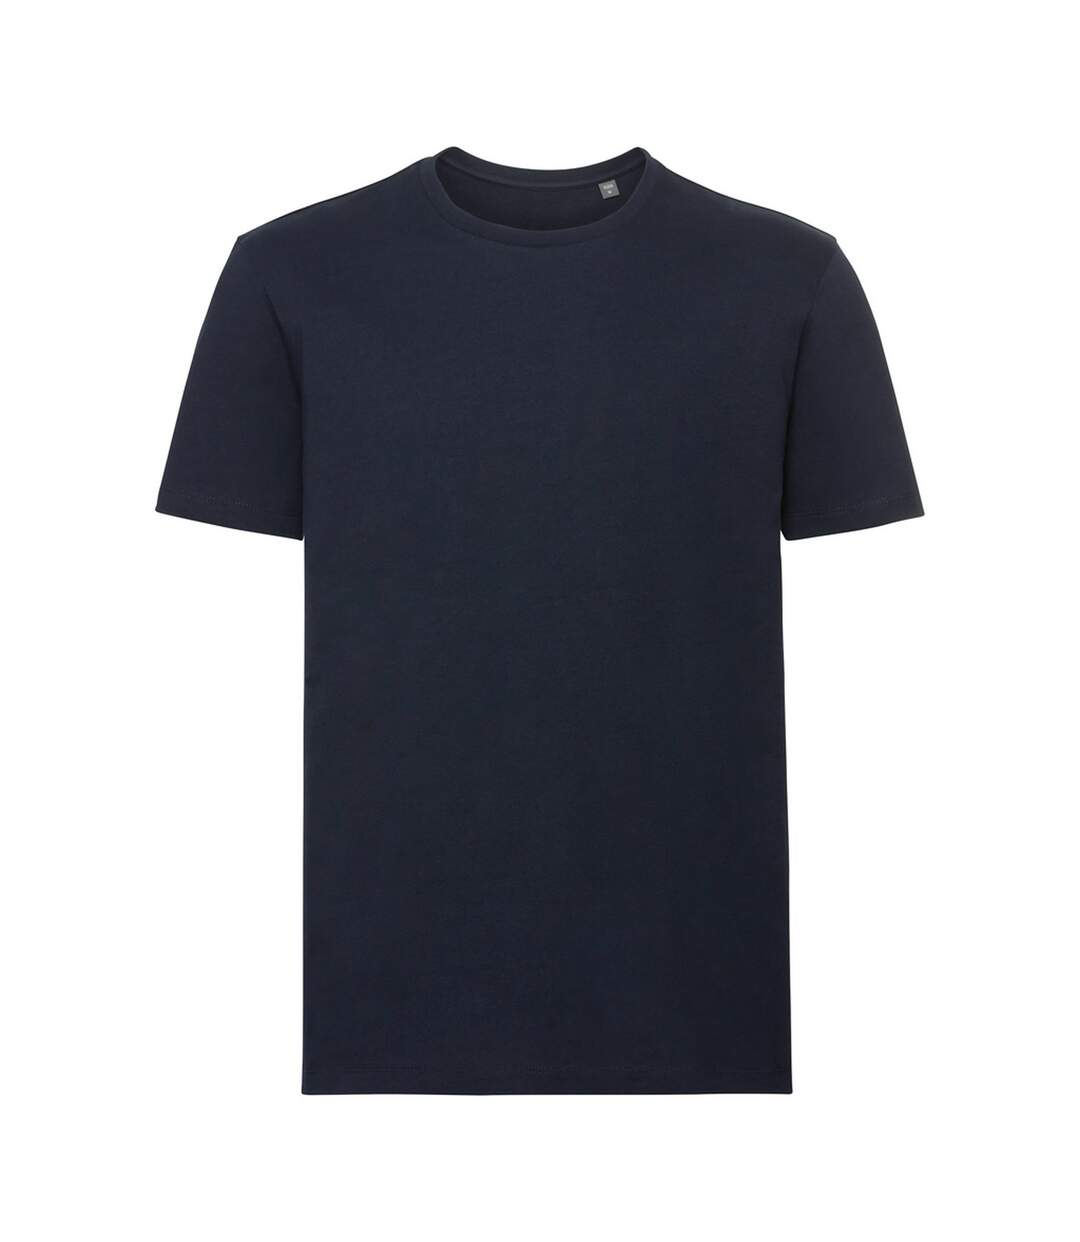 Russell - T-shirt manches courtes AUTHENTIC - Homme (Bleu marine) - UTPC3569